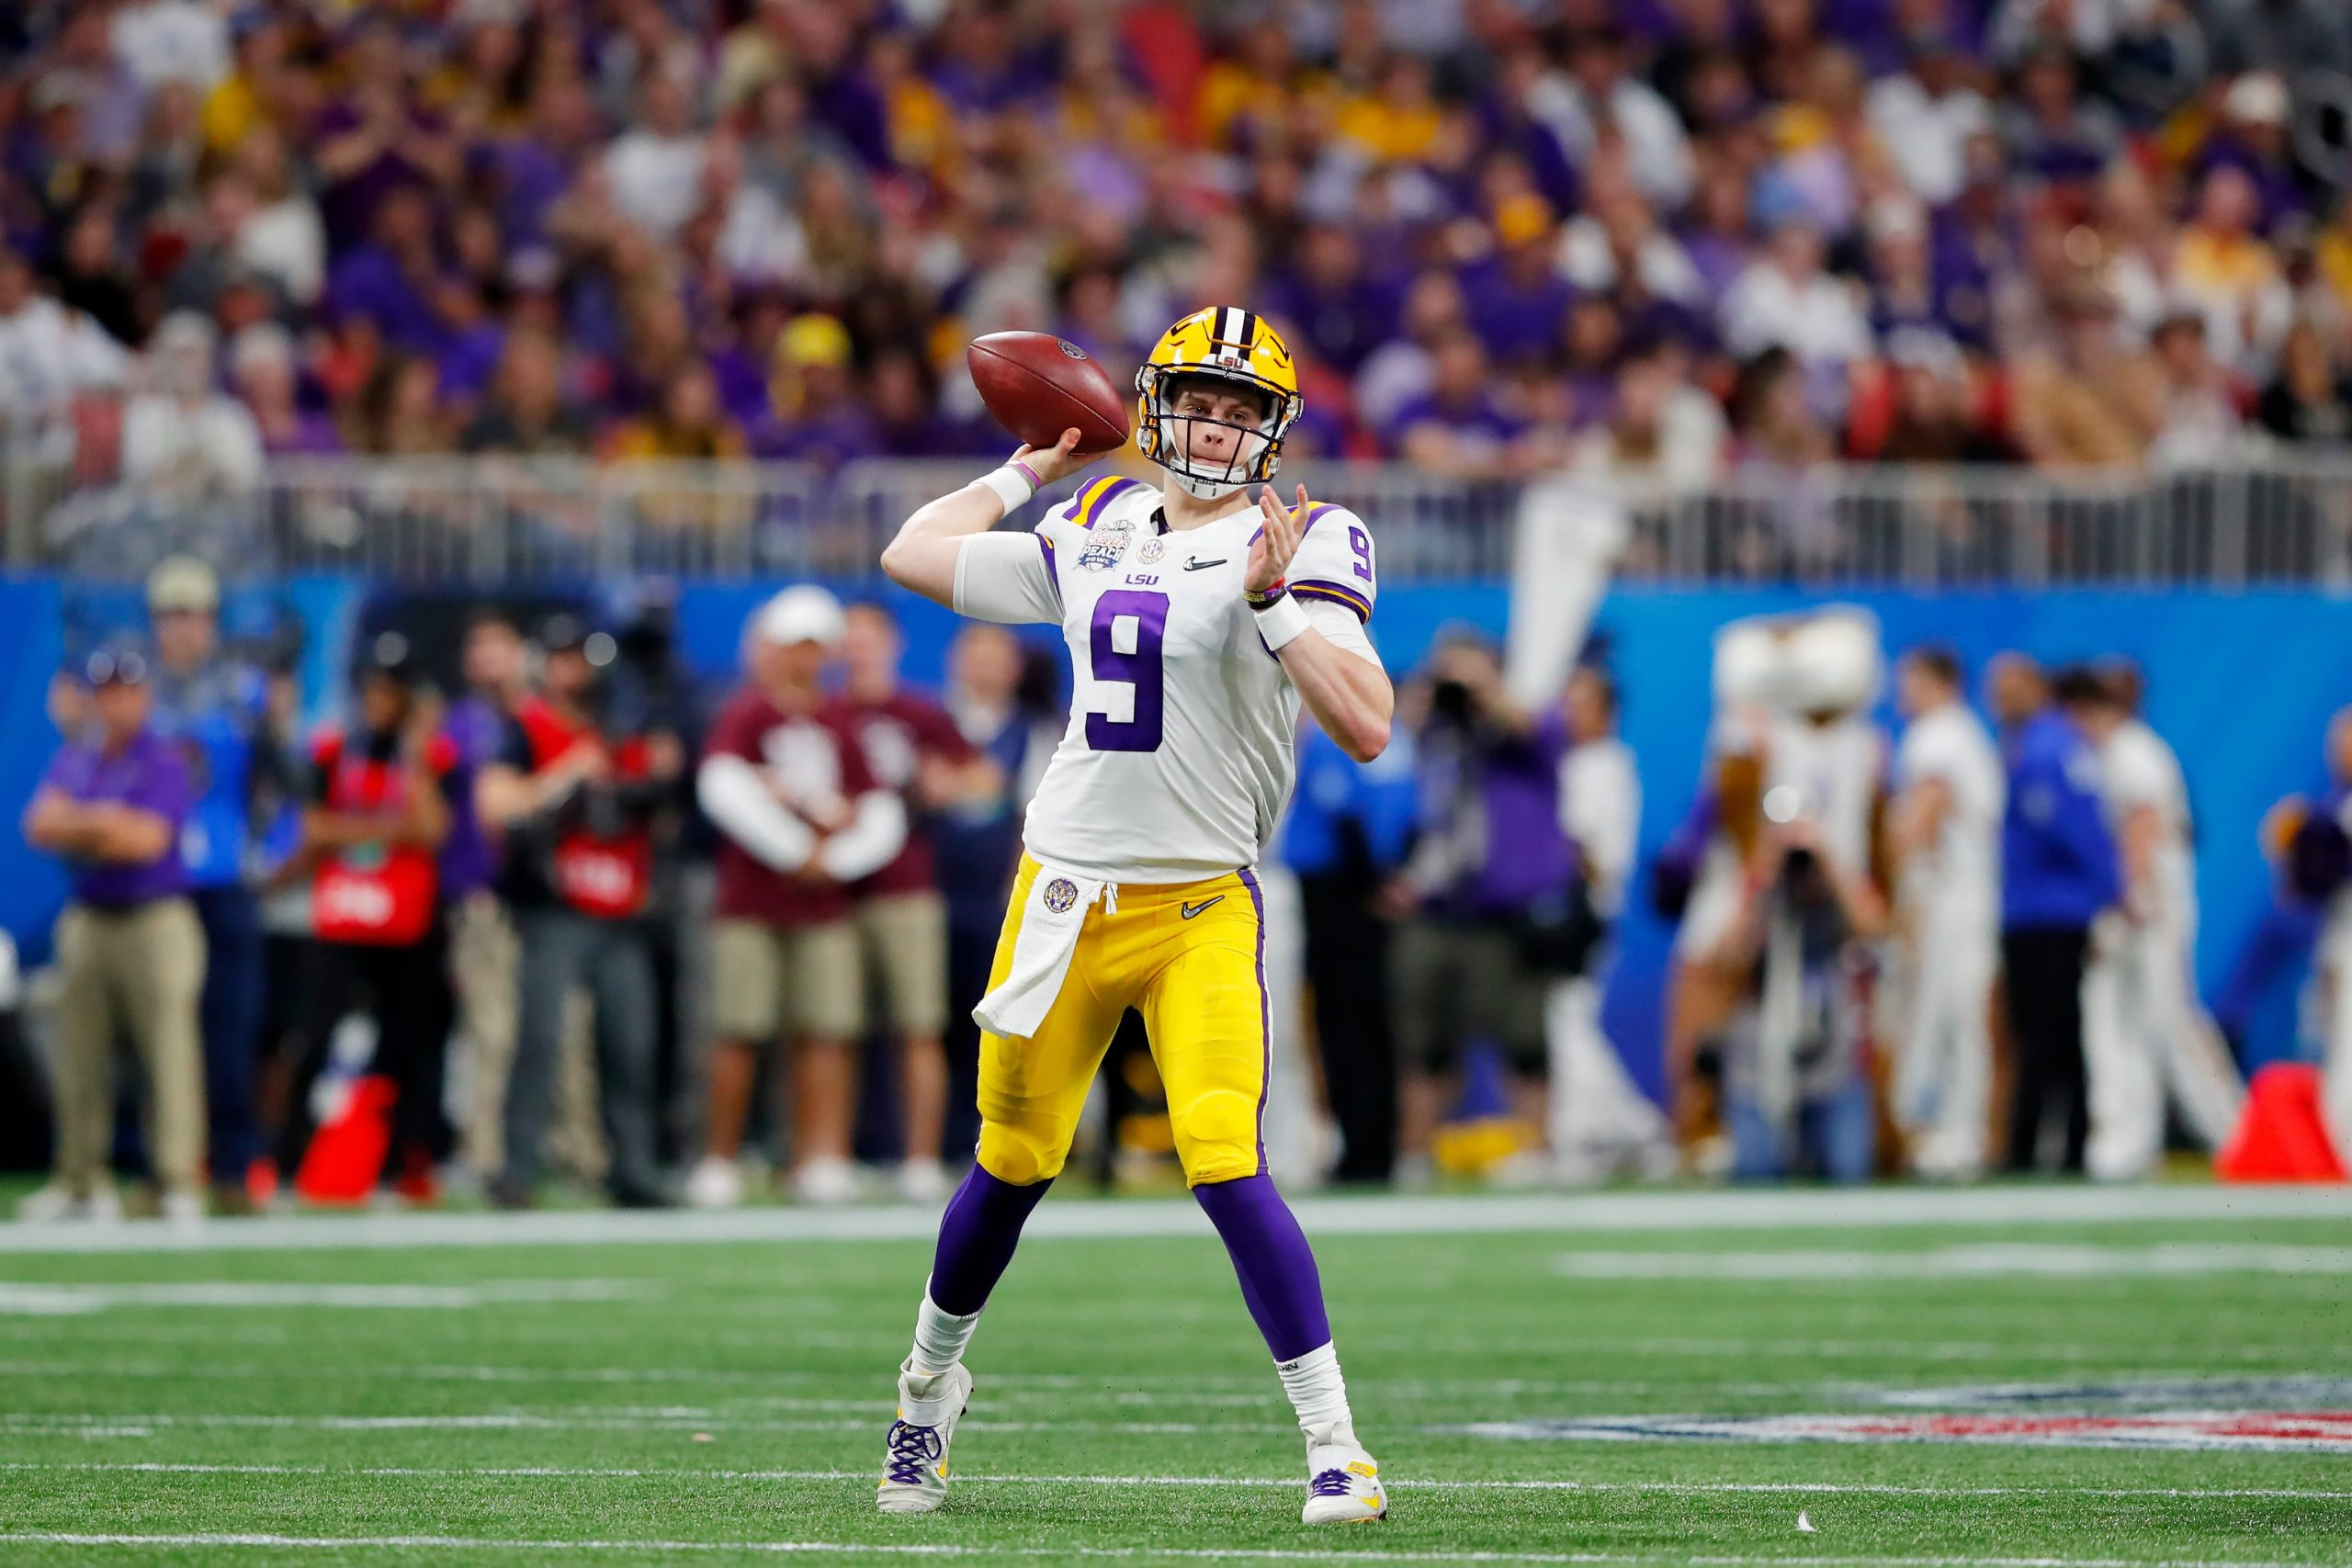 Heisman Trophy winner Joe Burrow throwing a pass during the Peach Bowl